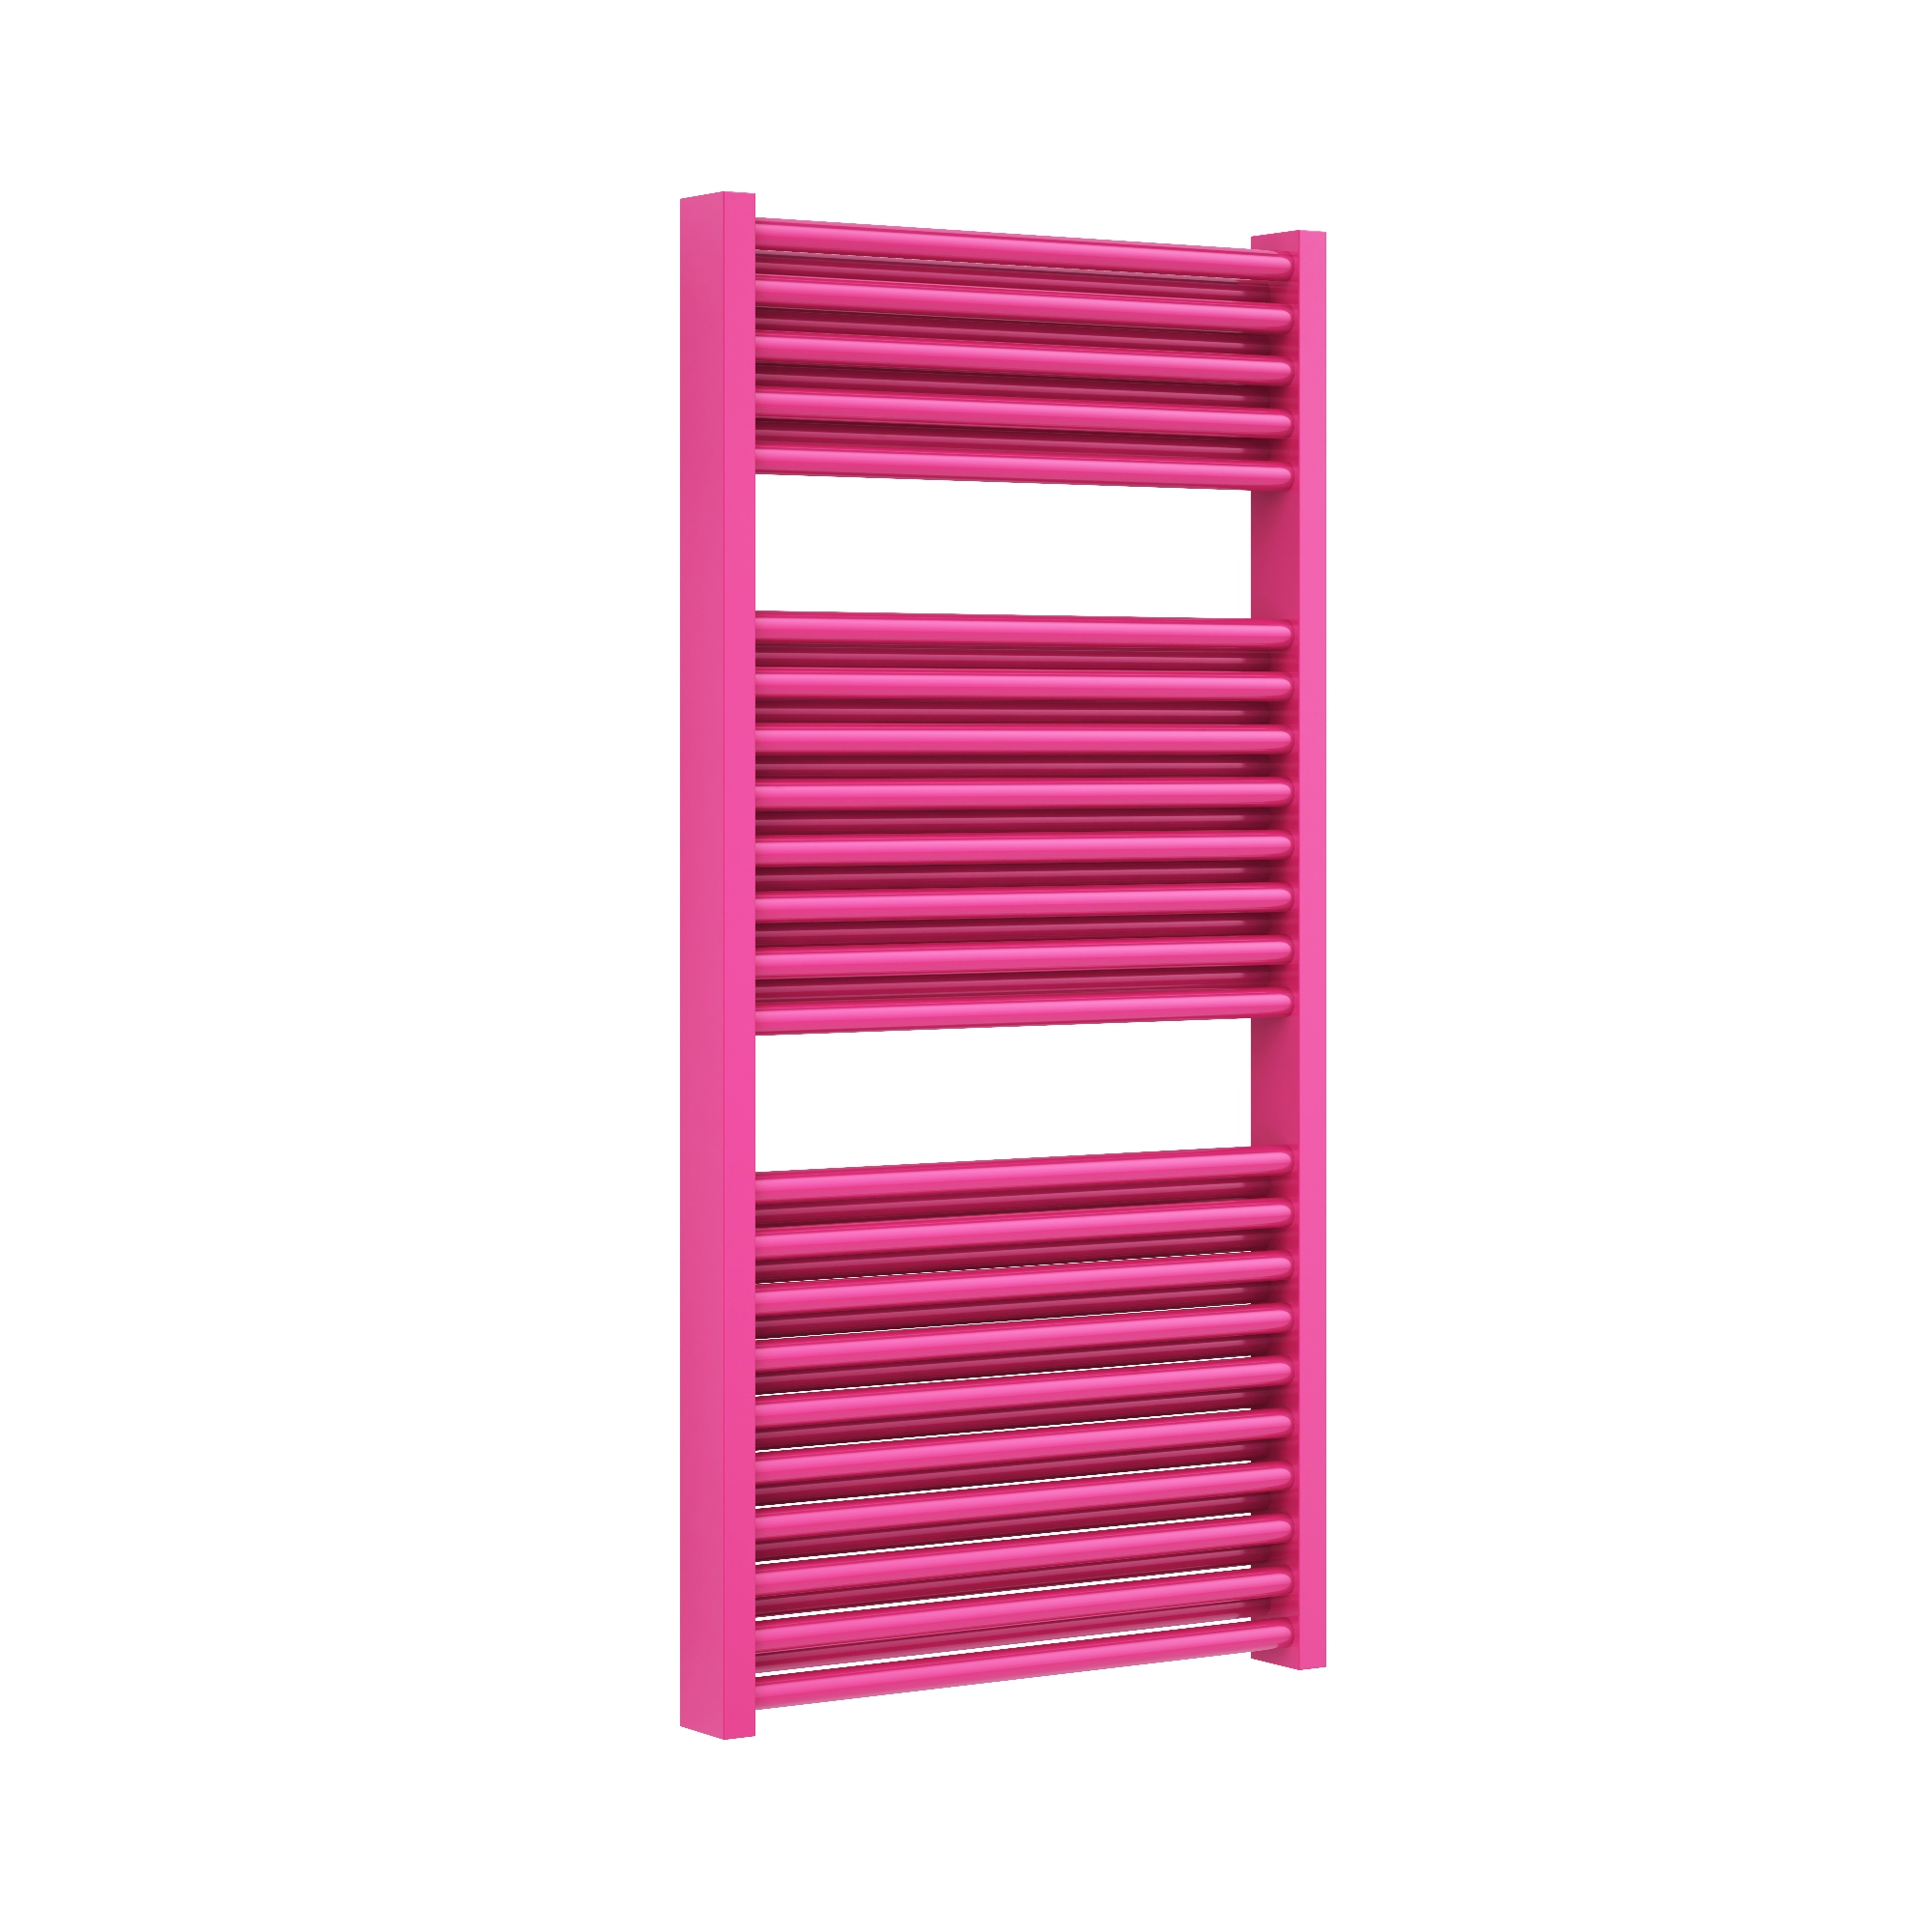 pink towel rail - central heatin towel rail in pink colour